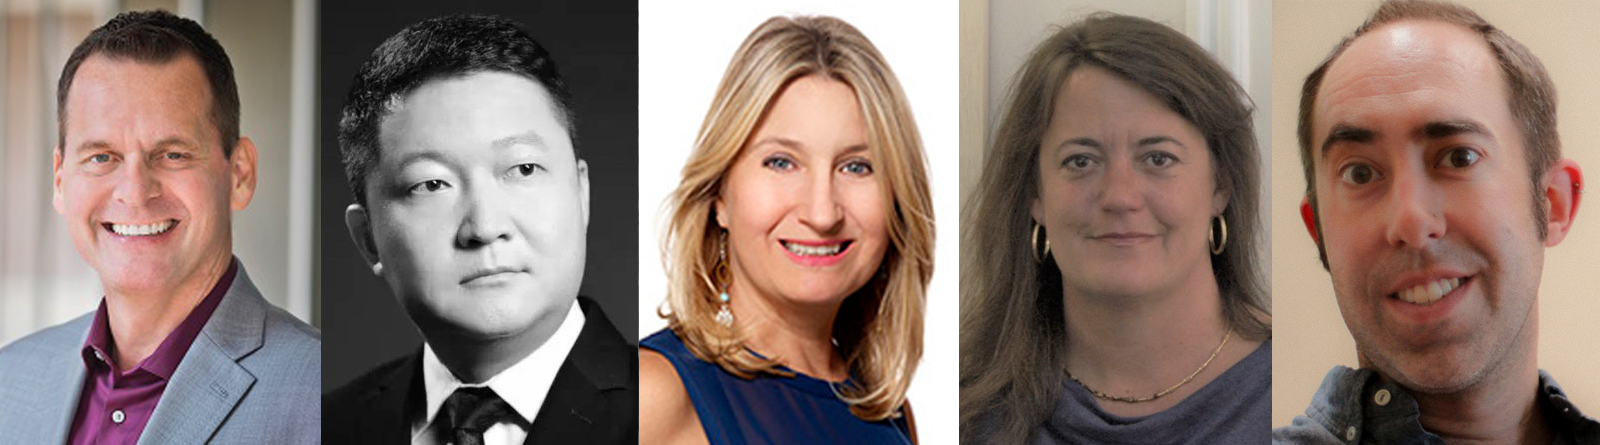 New TEA Board members announced and outgoing leaders thanked for their service in 2020